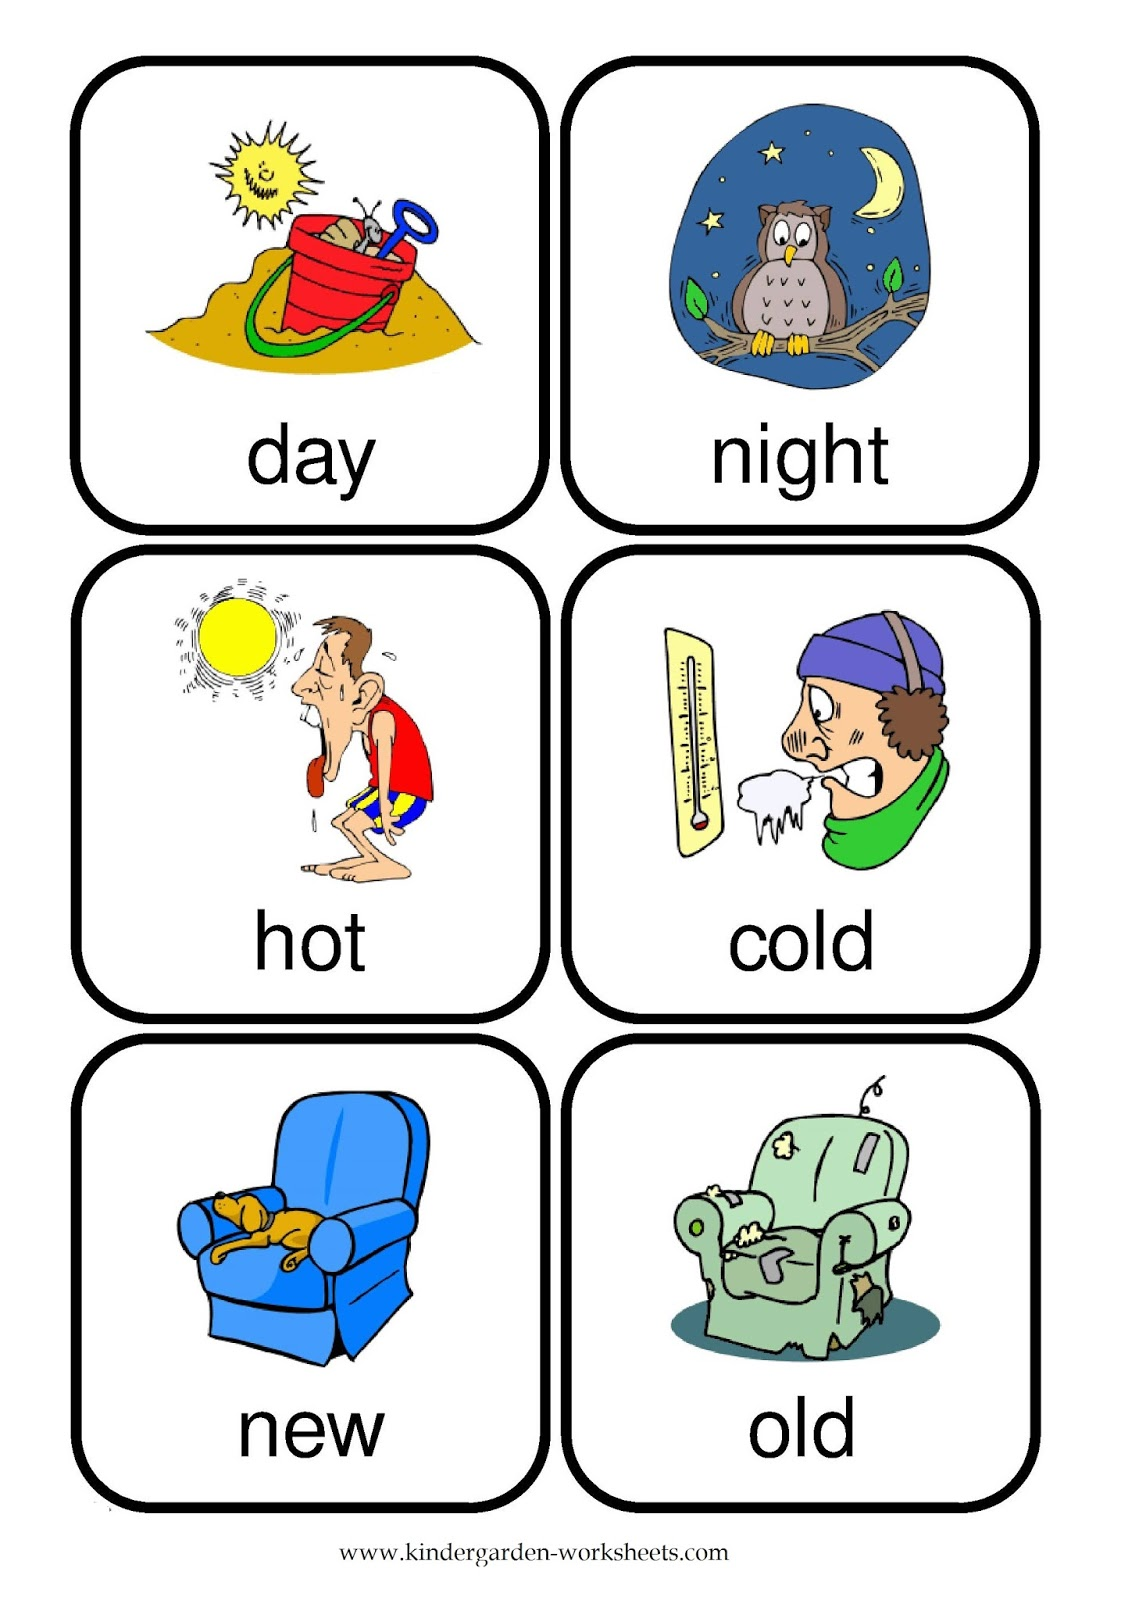 Worksheet 604780 Opposite Words Worksheets for Kindergarten – Opposites Kindergarten Worksheets